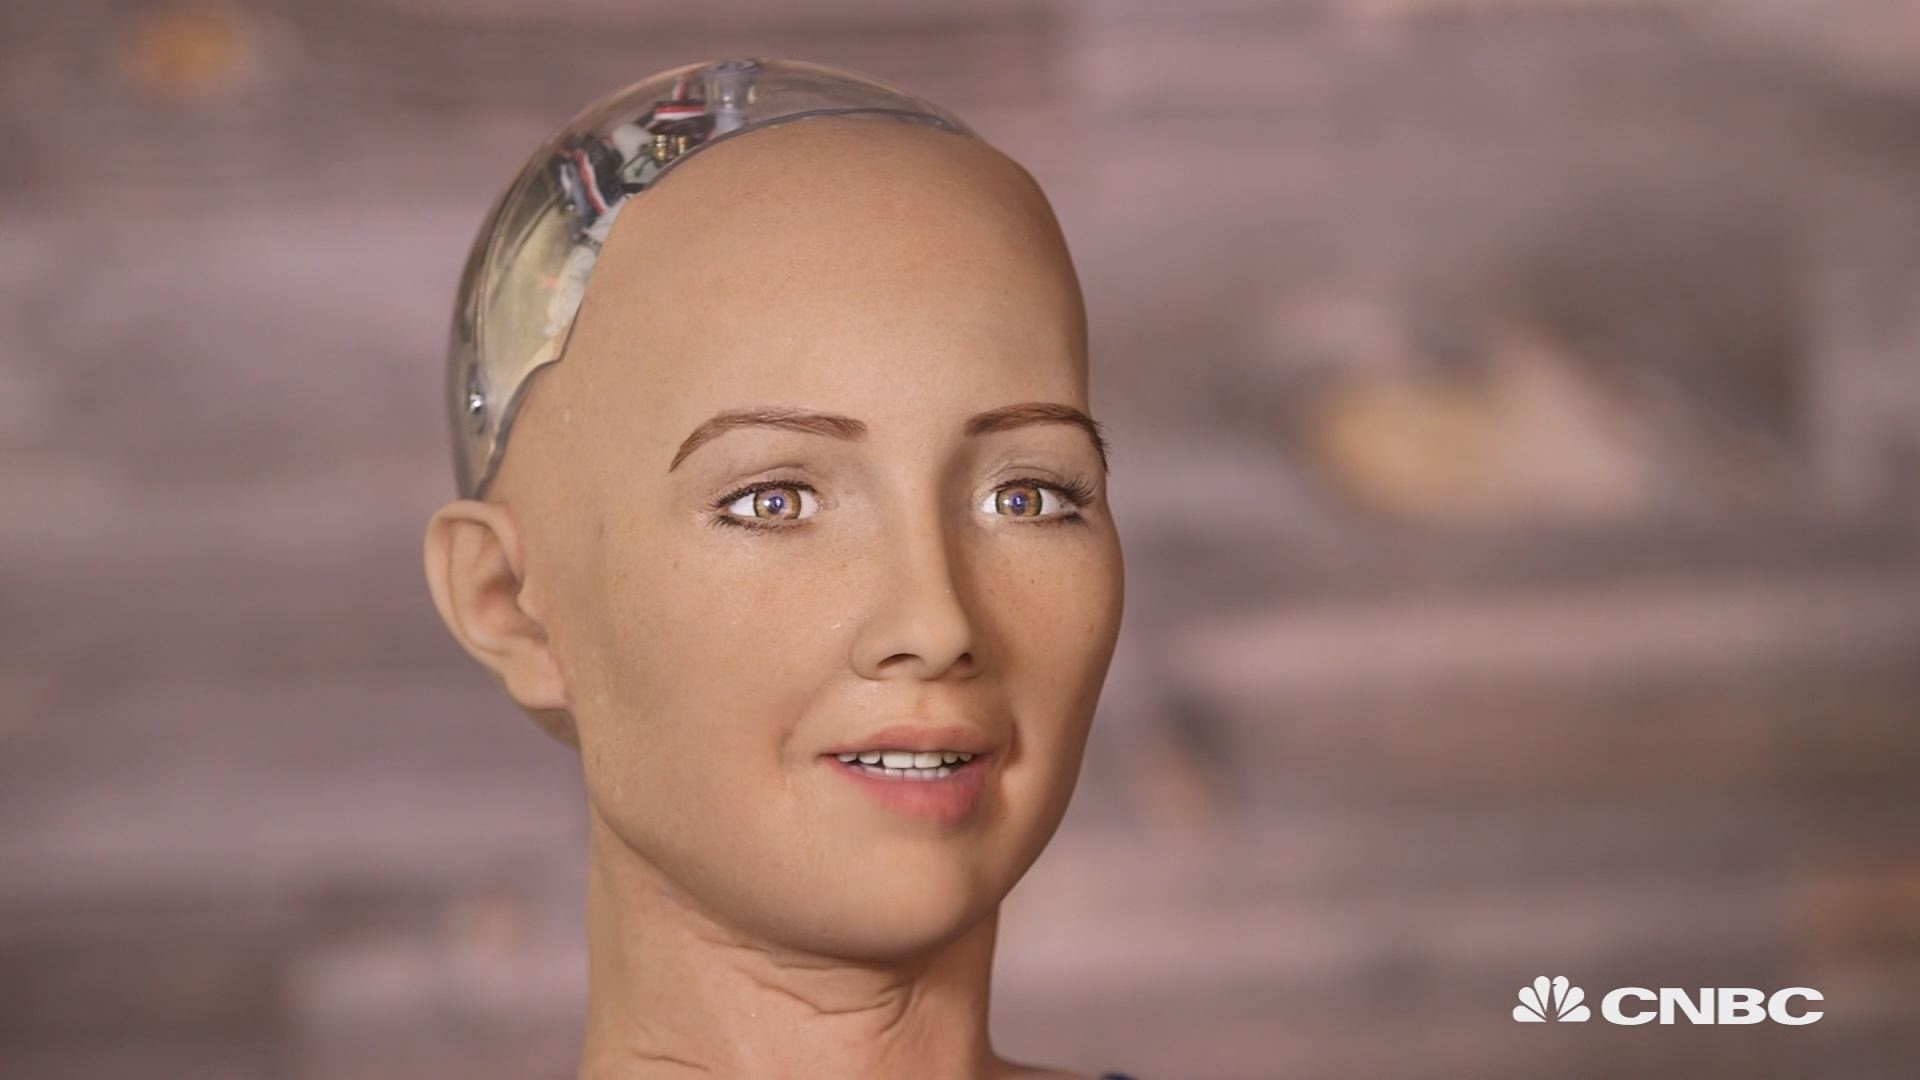 Could you fall in love with this robot?